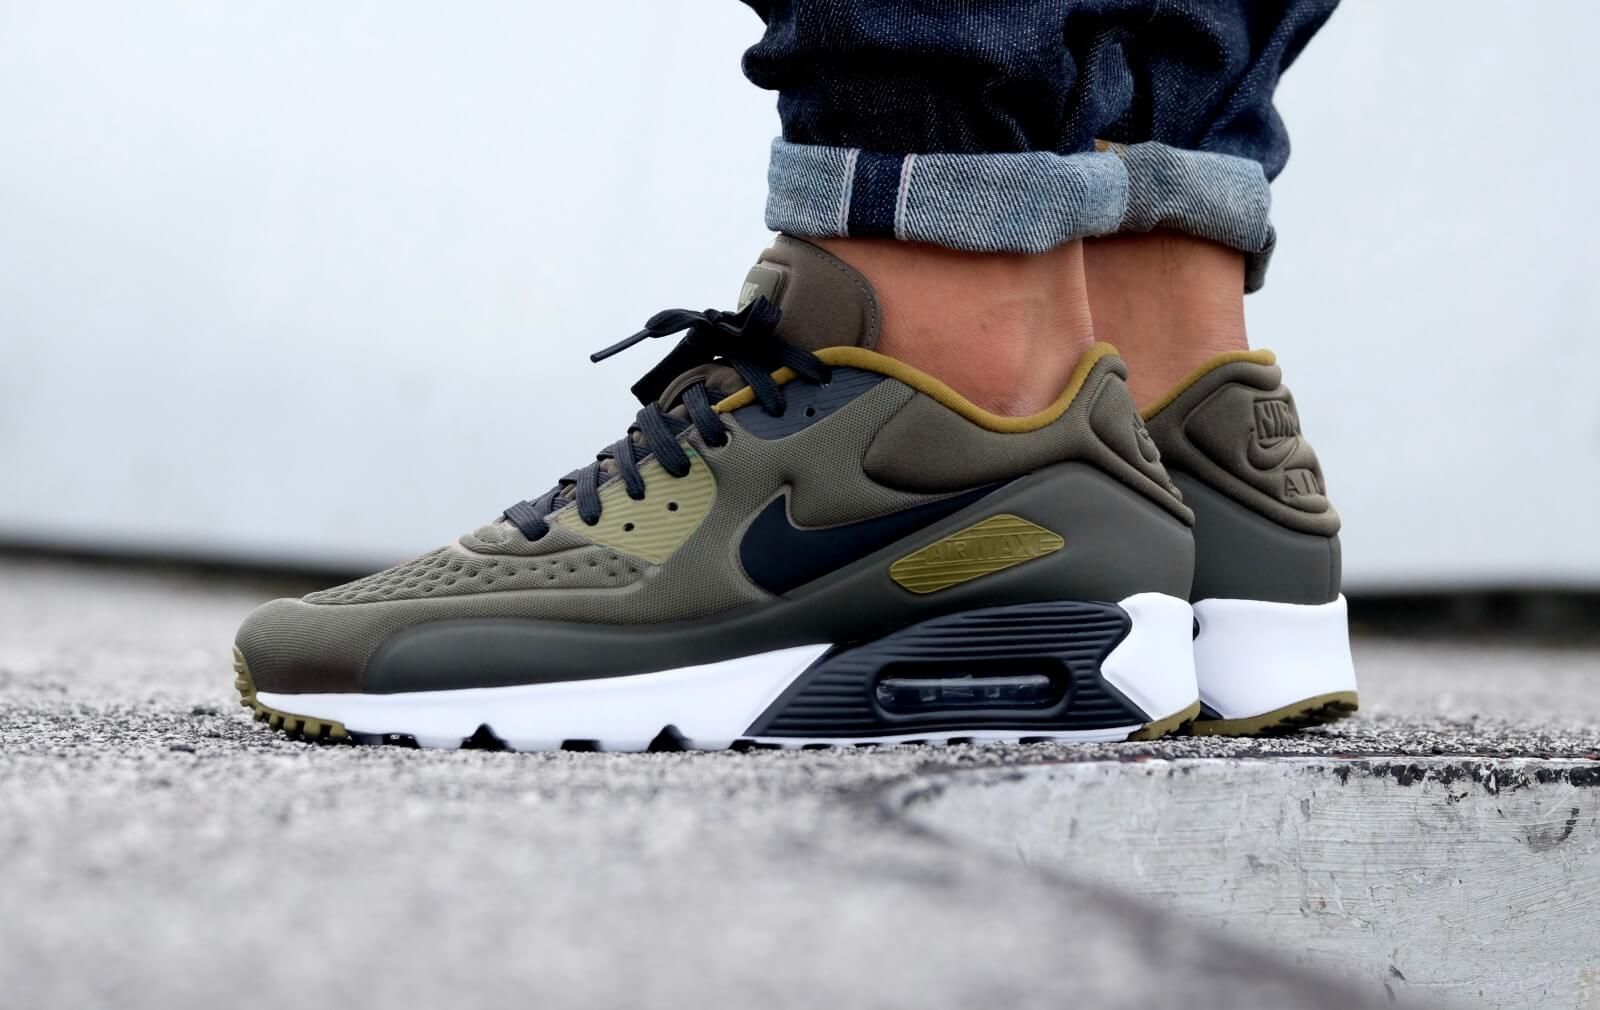 9694ea03168cc5 ... wholesale 1054774810842427482578894196629139235075975o nike air max 90  ultra special edition cargo khaki black olive flak white 52e06